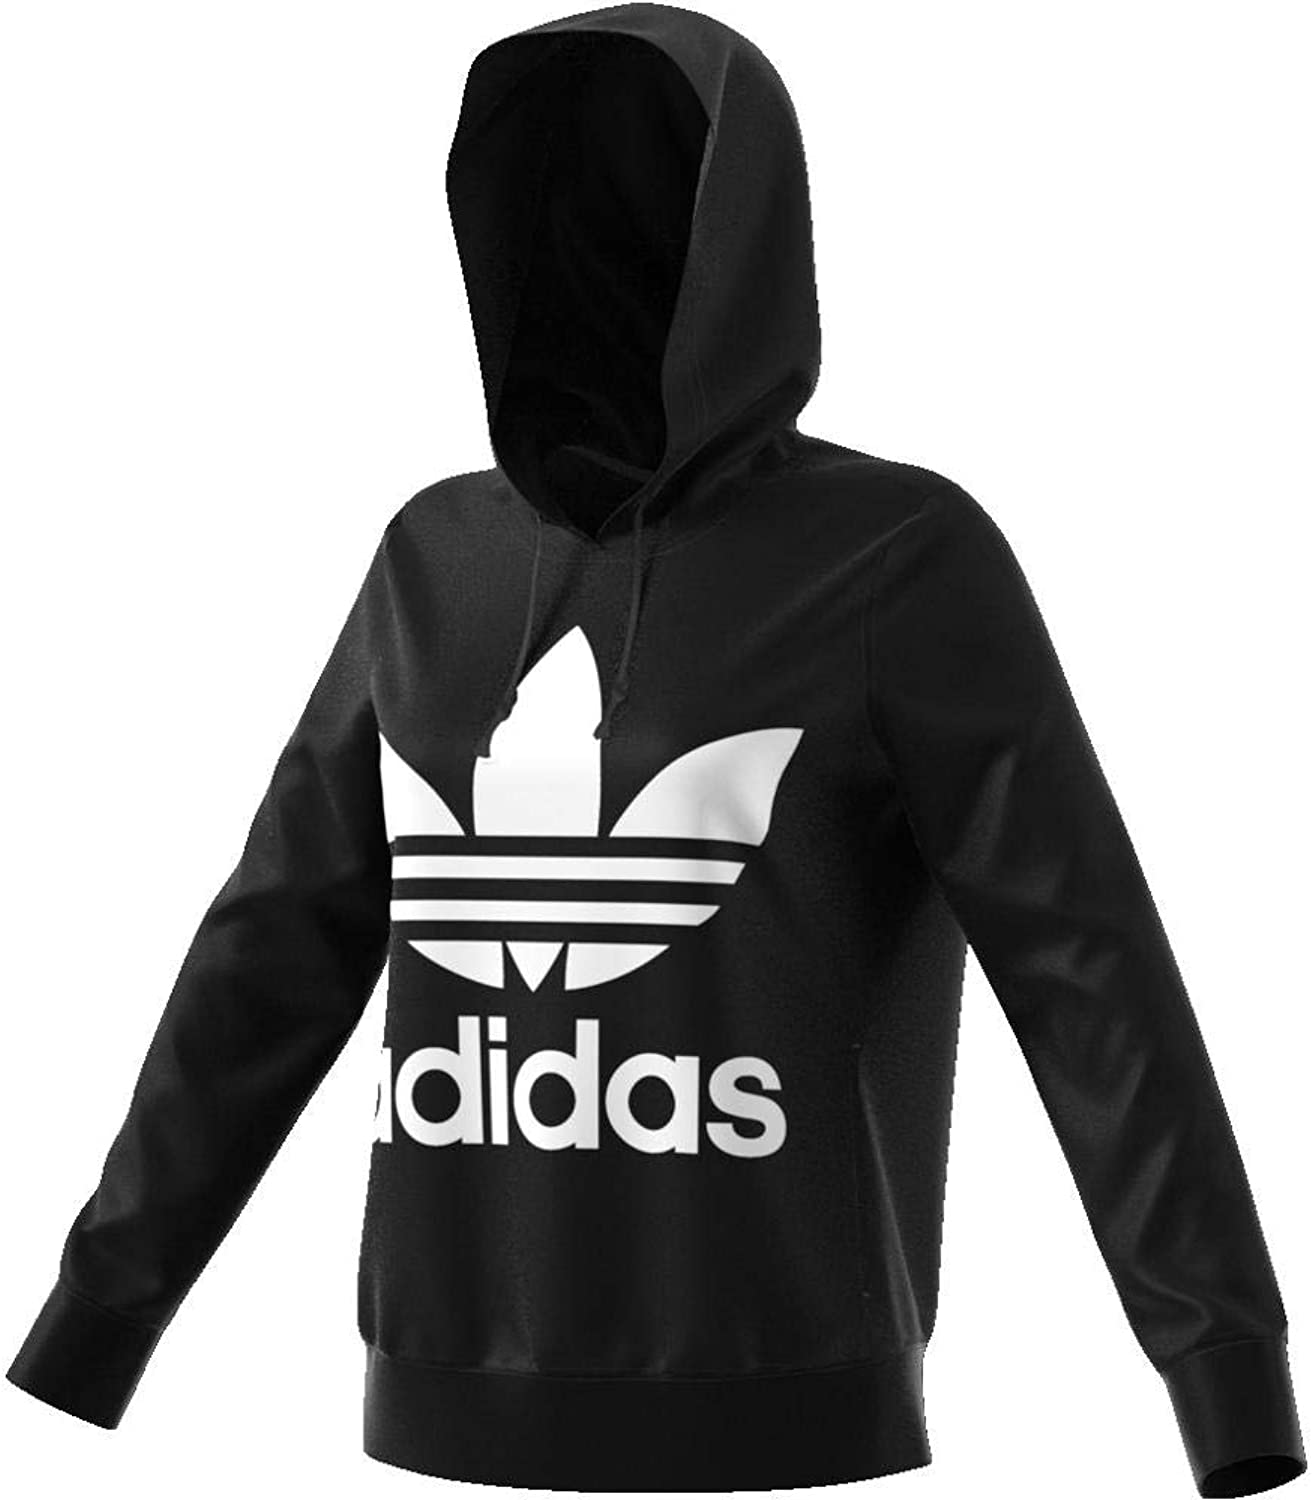 ADIDAS unisex clothing hooded sweatshirt CE2408 TREFOIL HOODIE 44 black